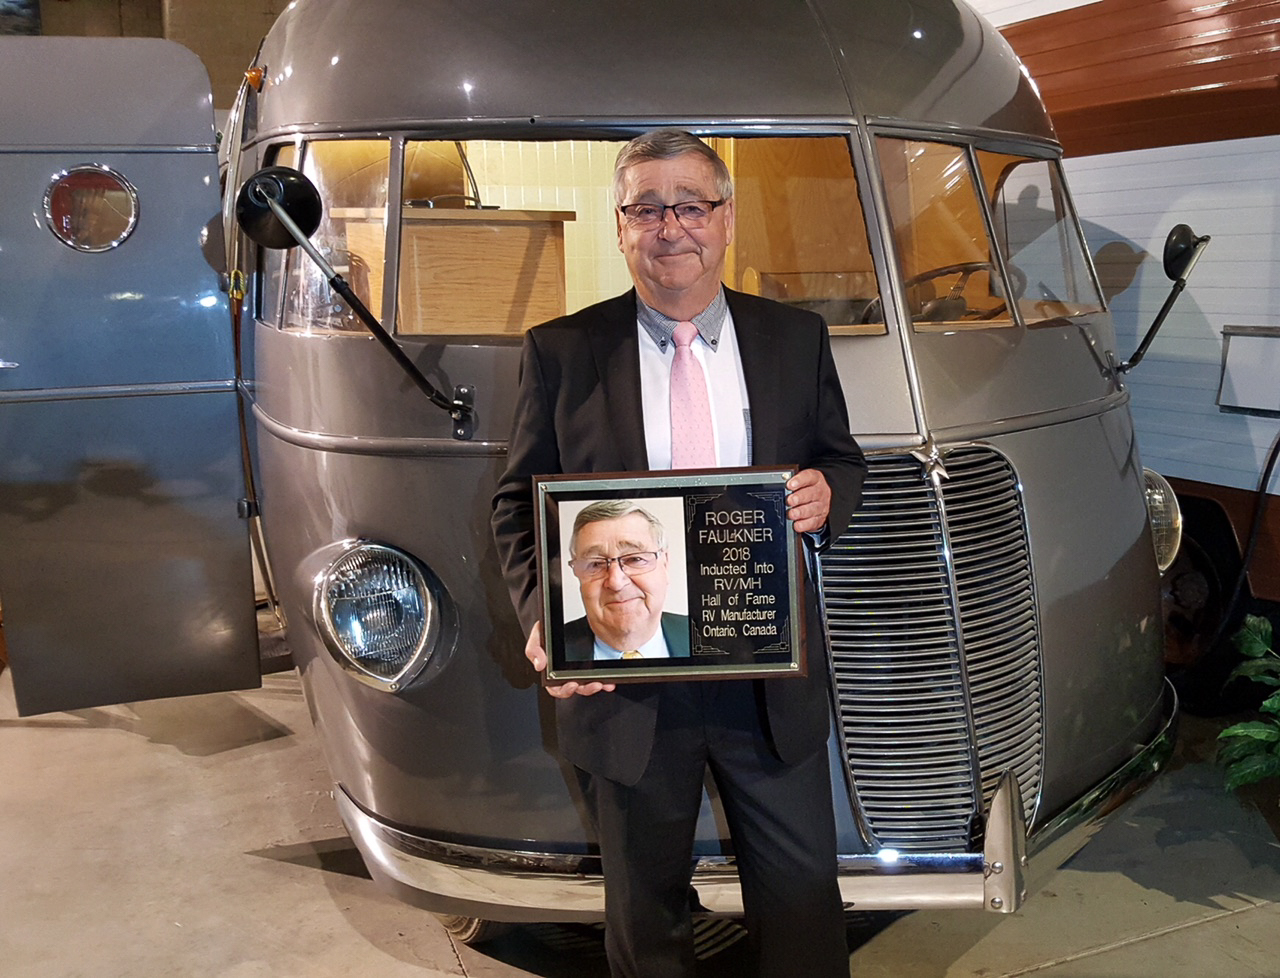 Rv Hall Of Fame >> Roger Faulkner Inducted Into Rv Mh Hall Of Fame Rv Dealer News